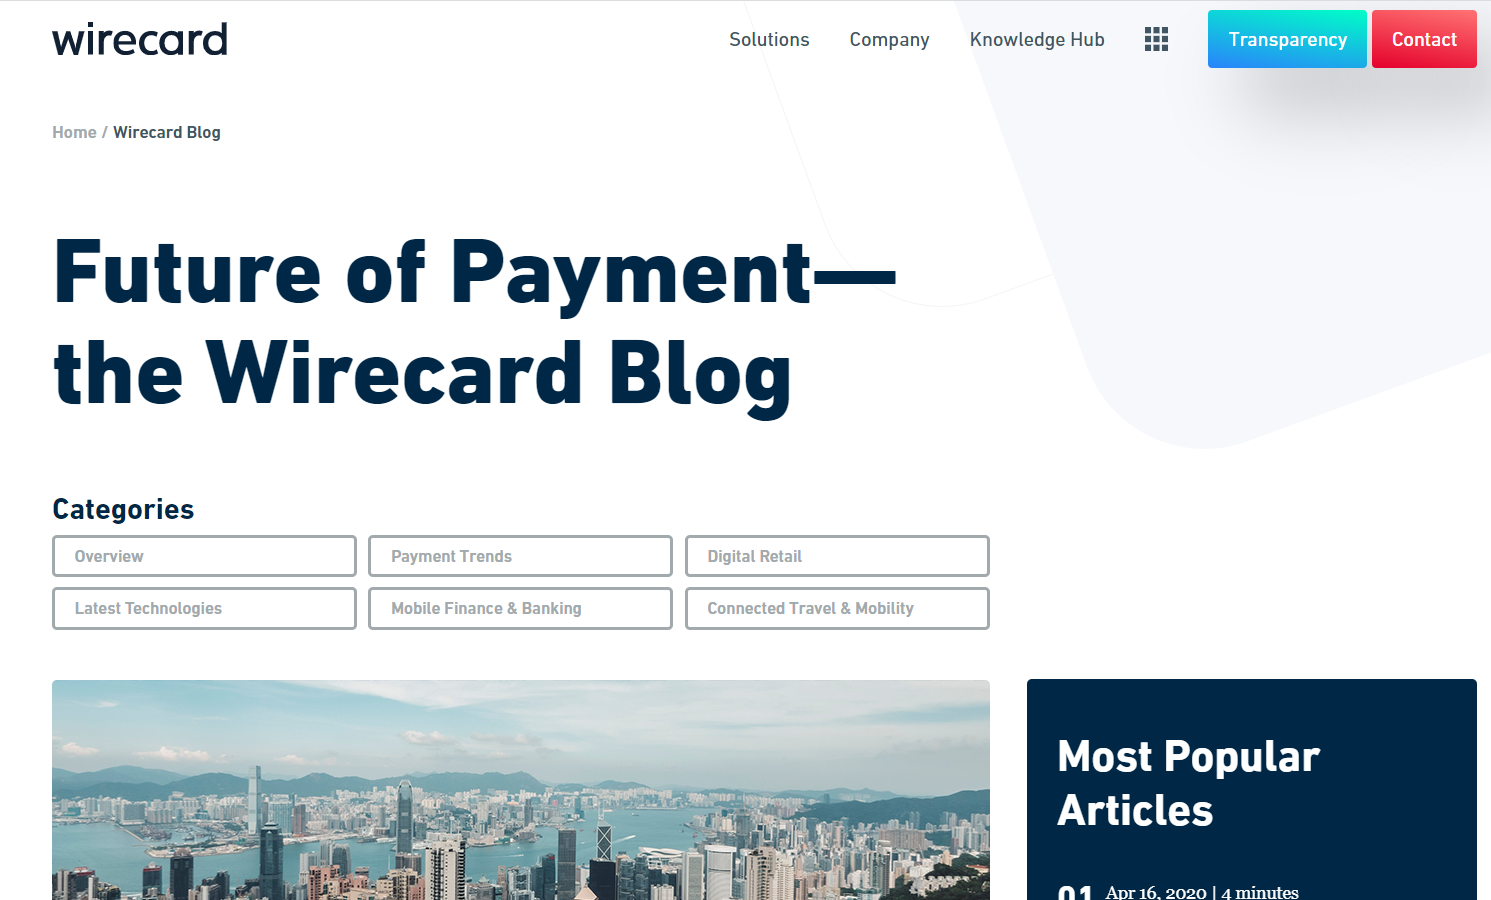 Top 10 unknown tech websites- wirecard